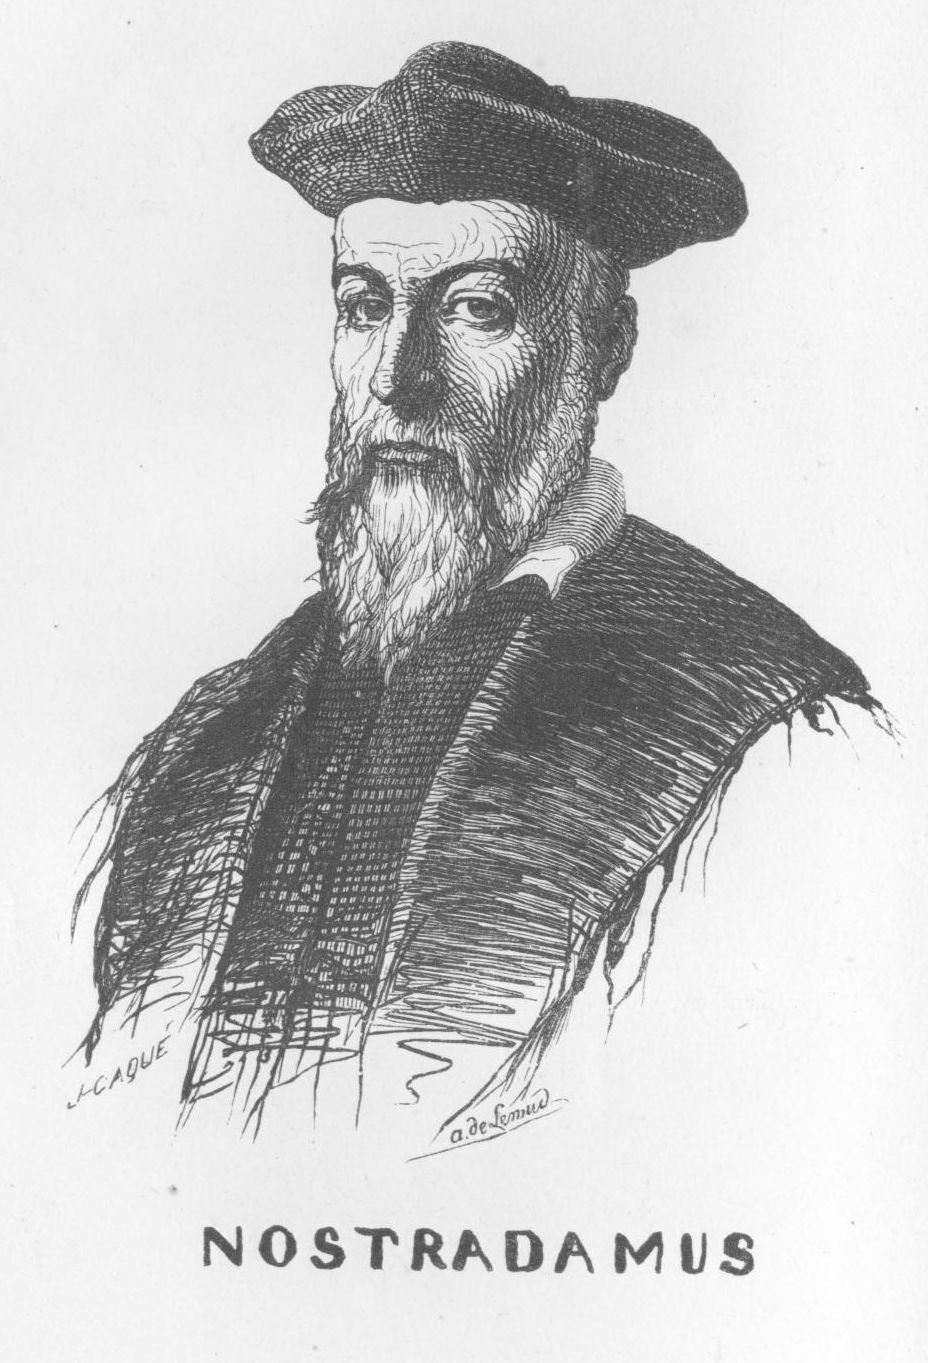 http://upload.wikimedia.org/wikipedia/commons/5/5c/Nostradamus_by_Lemud.jpg